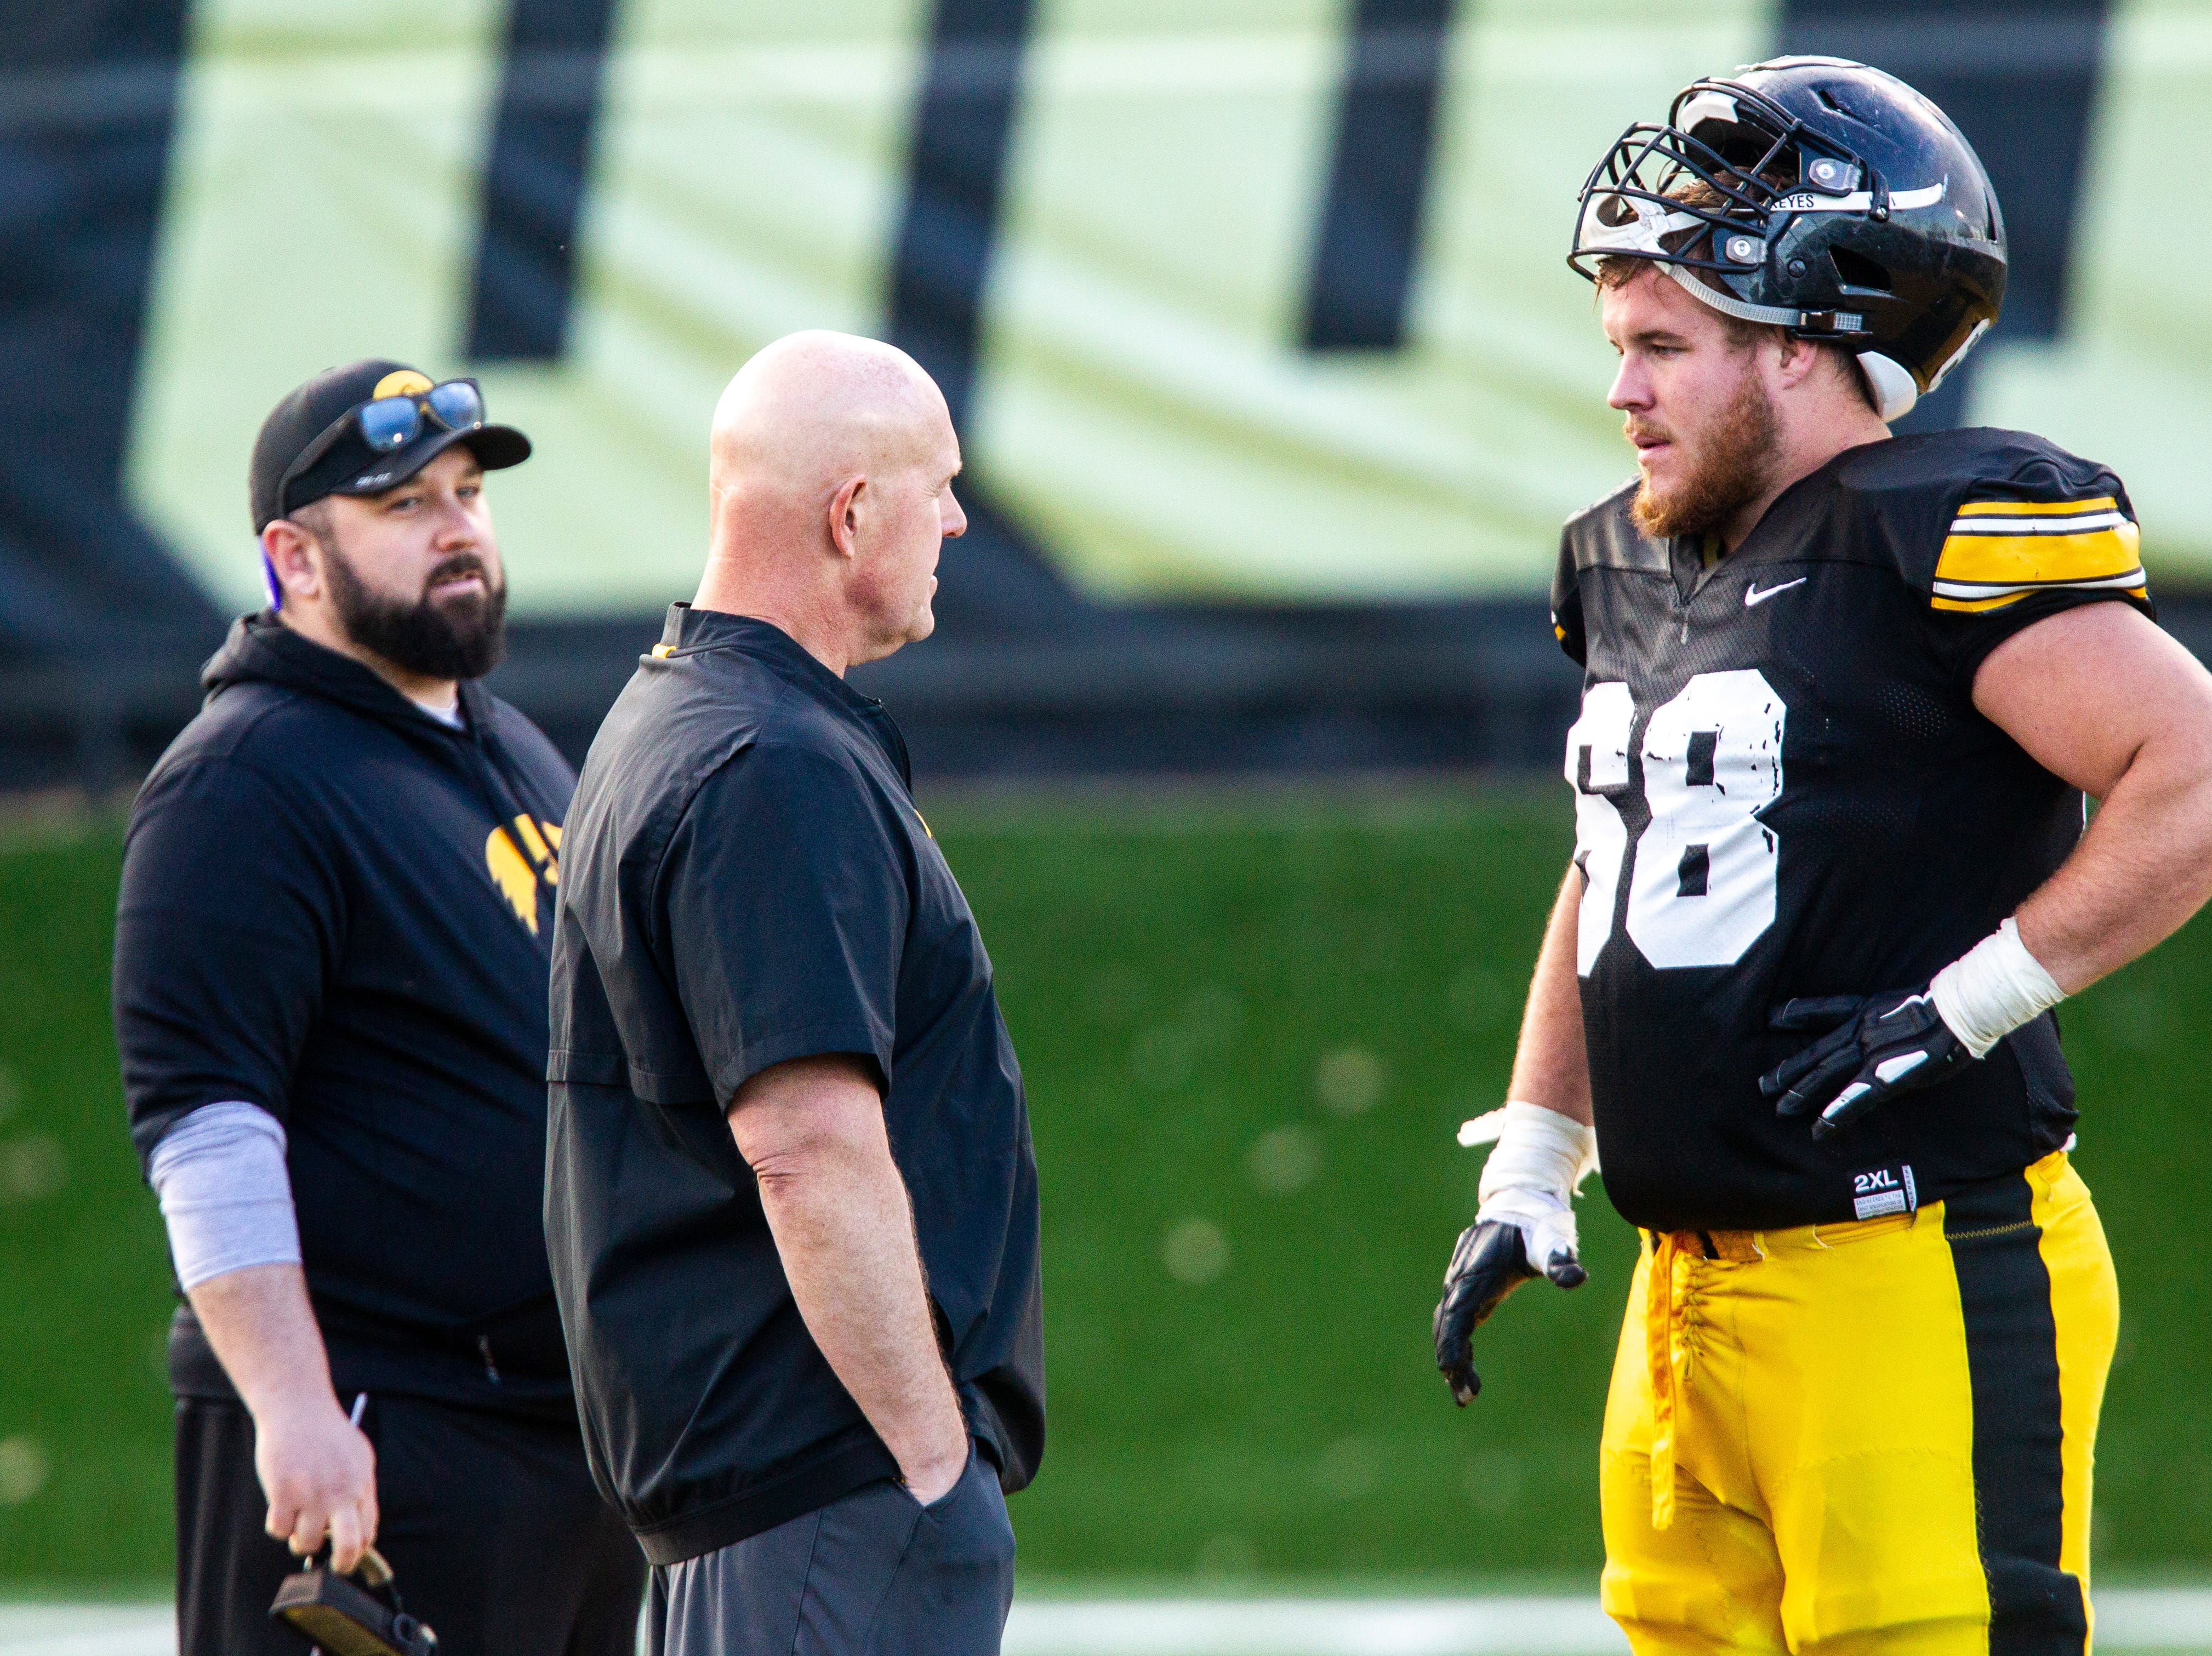 Iowa strength and conditioning coach Chris Doyle, second from left, talks with offensive lineman Landan Paulsen (68) after the final spring football practice, Friday, April 26, 2019, at the University of Iowa outdoor practice facility in Iowa City, Iowa.